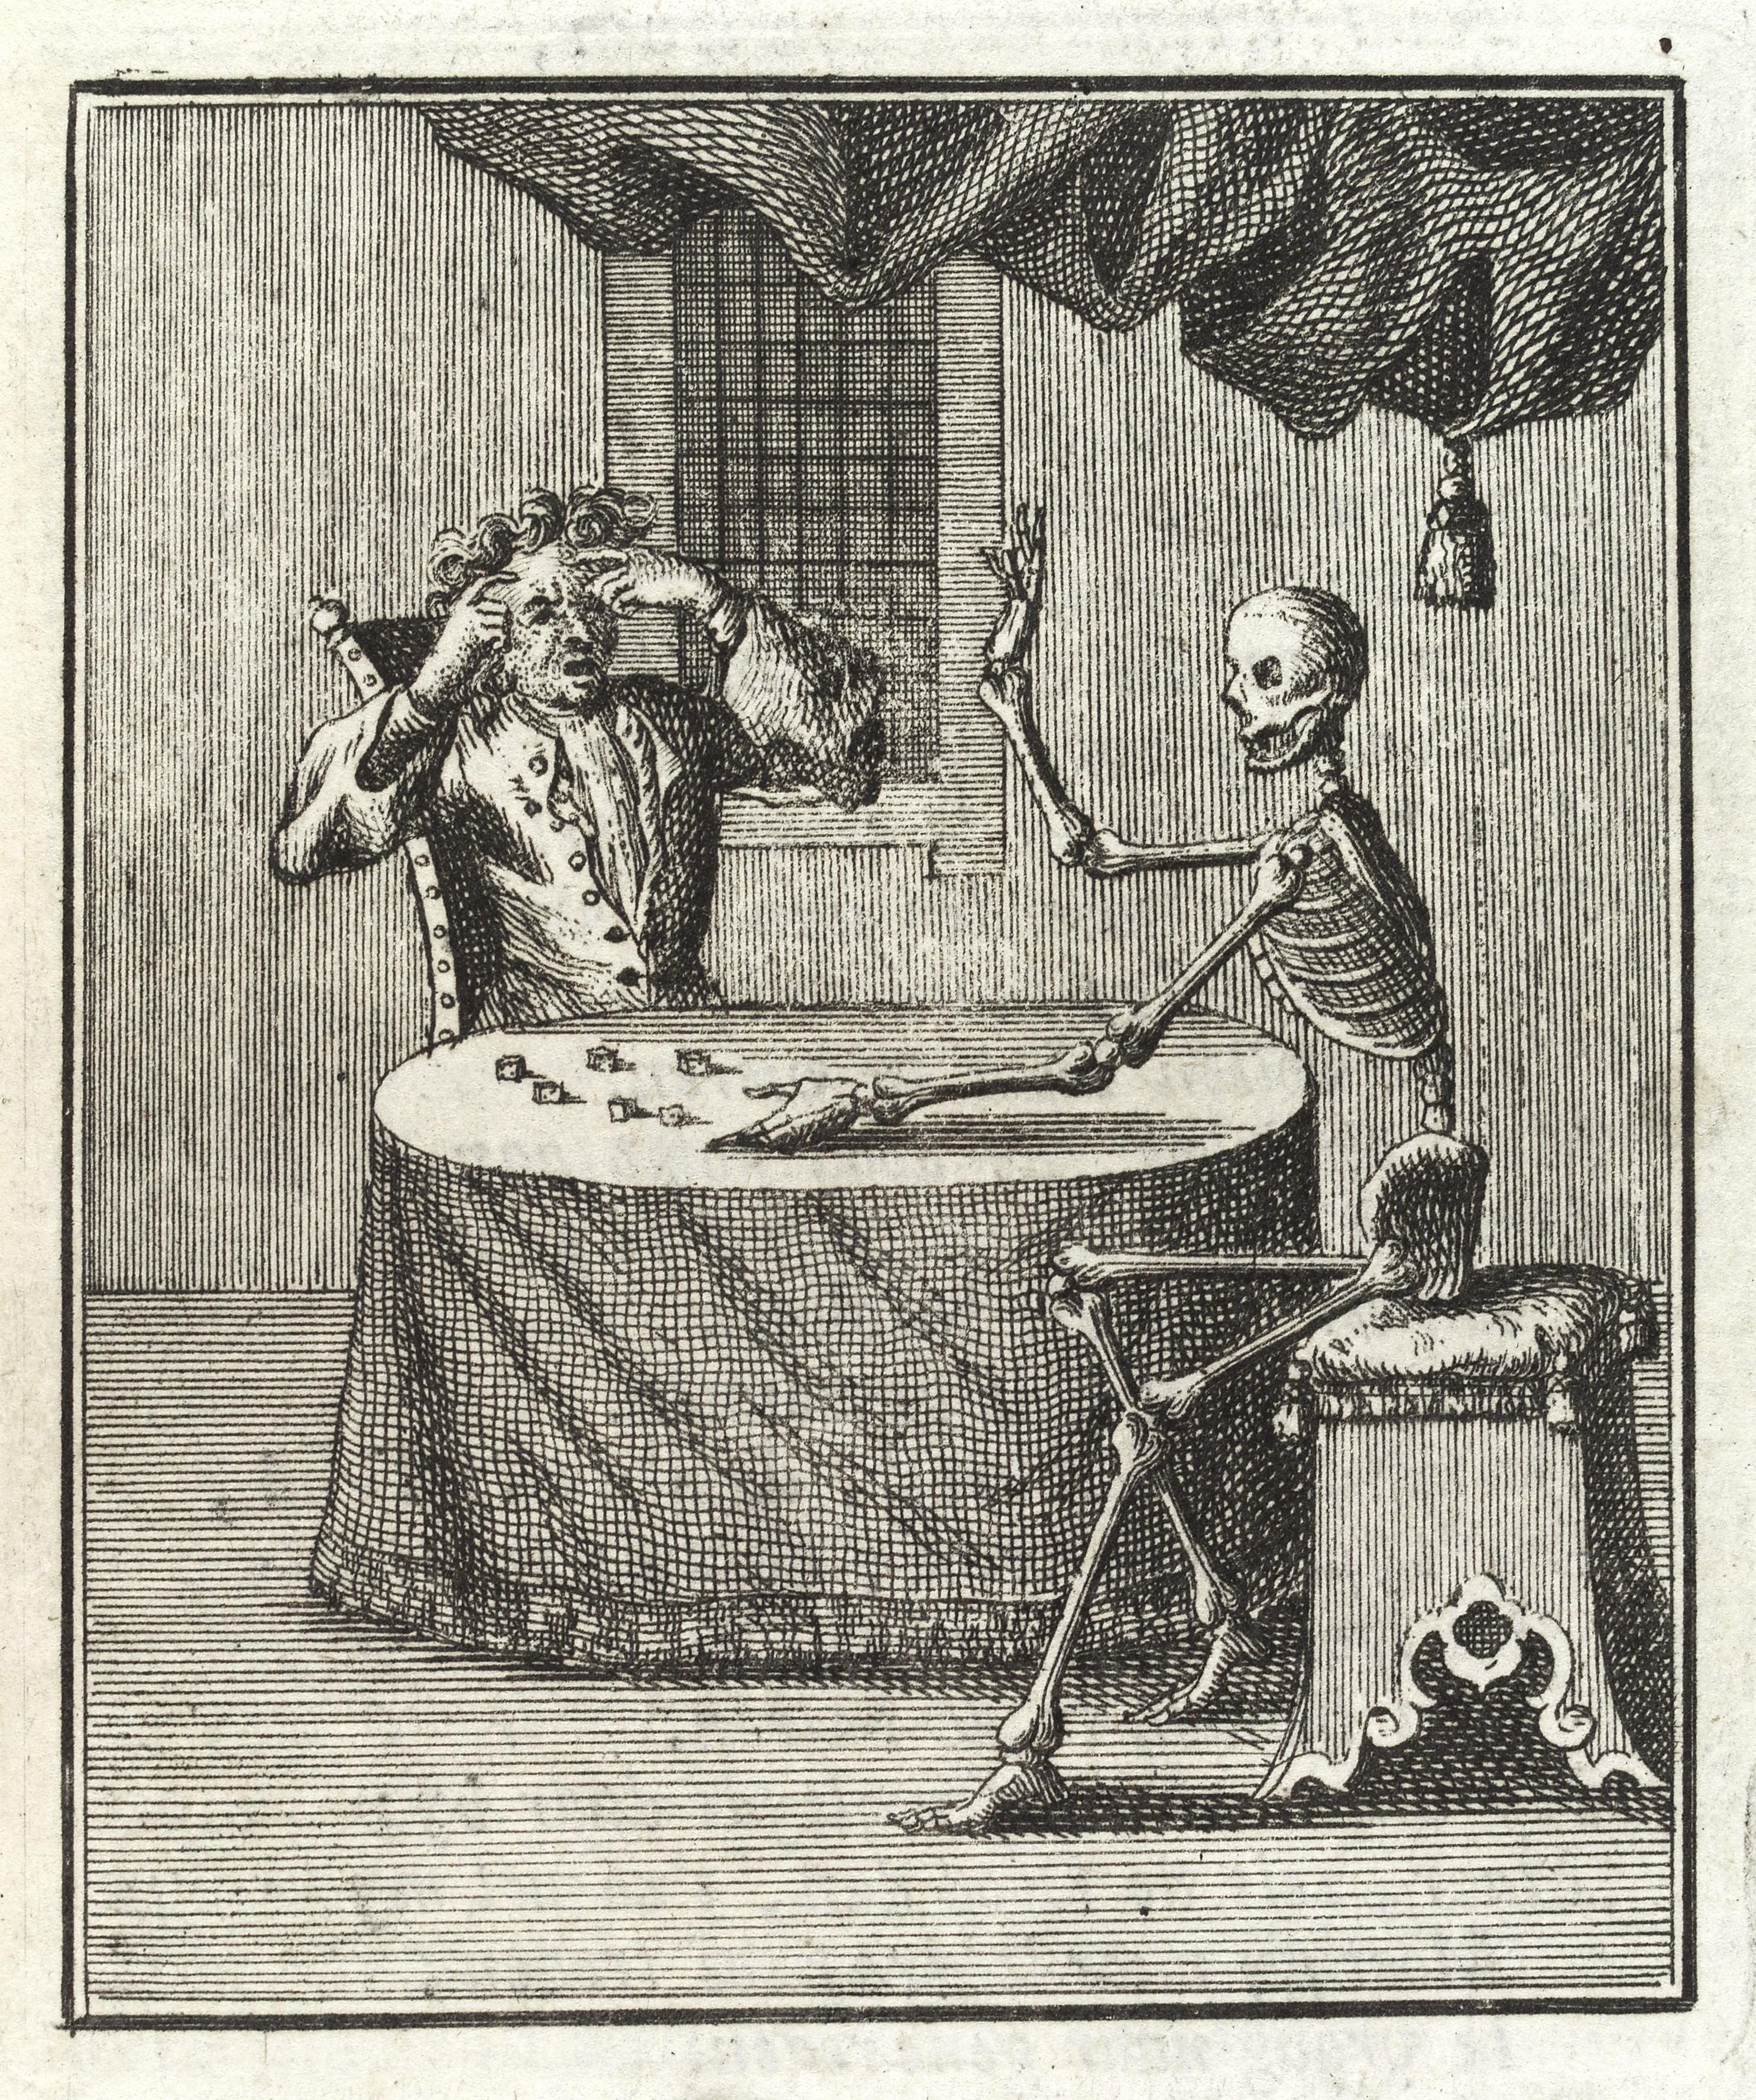 File:A man dicing with death, as a skeleton, 1764 Wellcome L0037504.